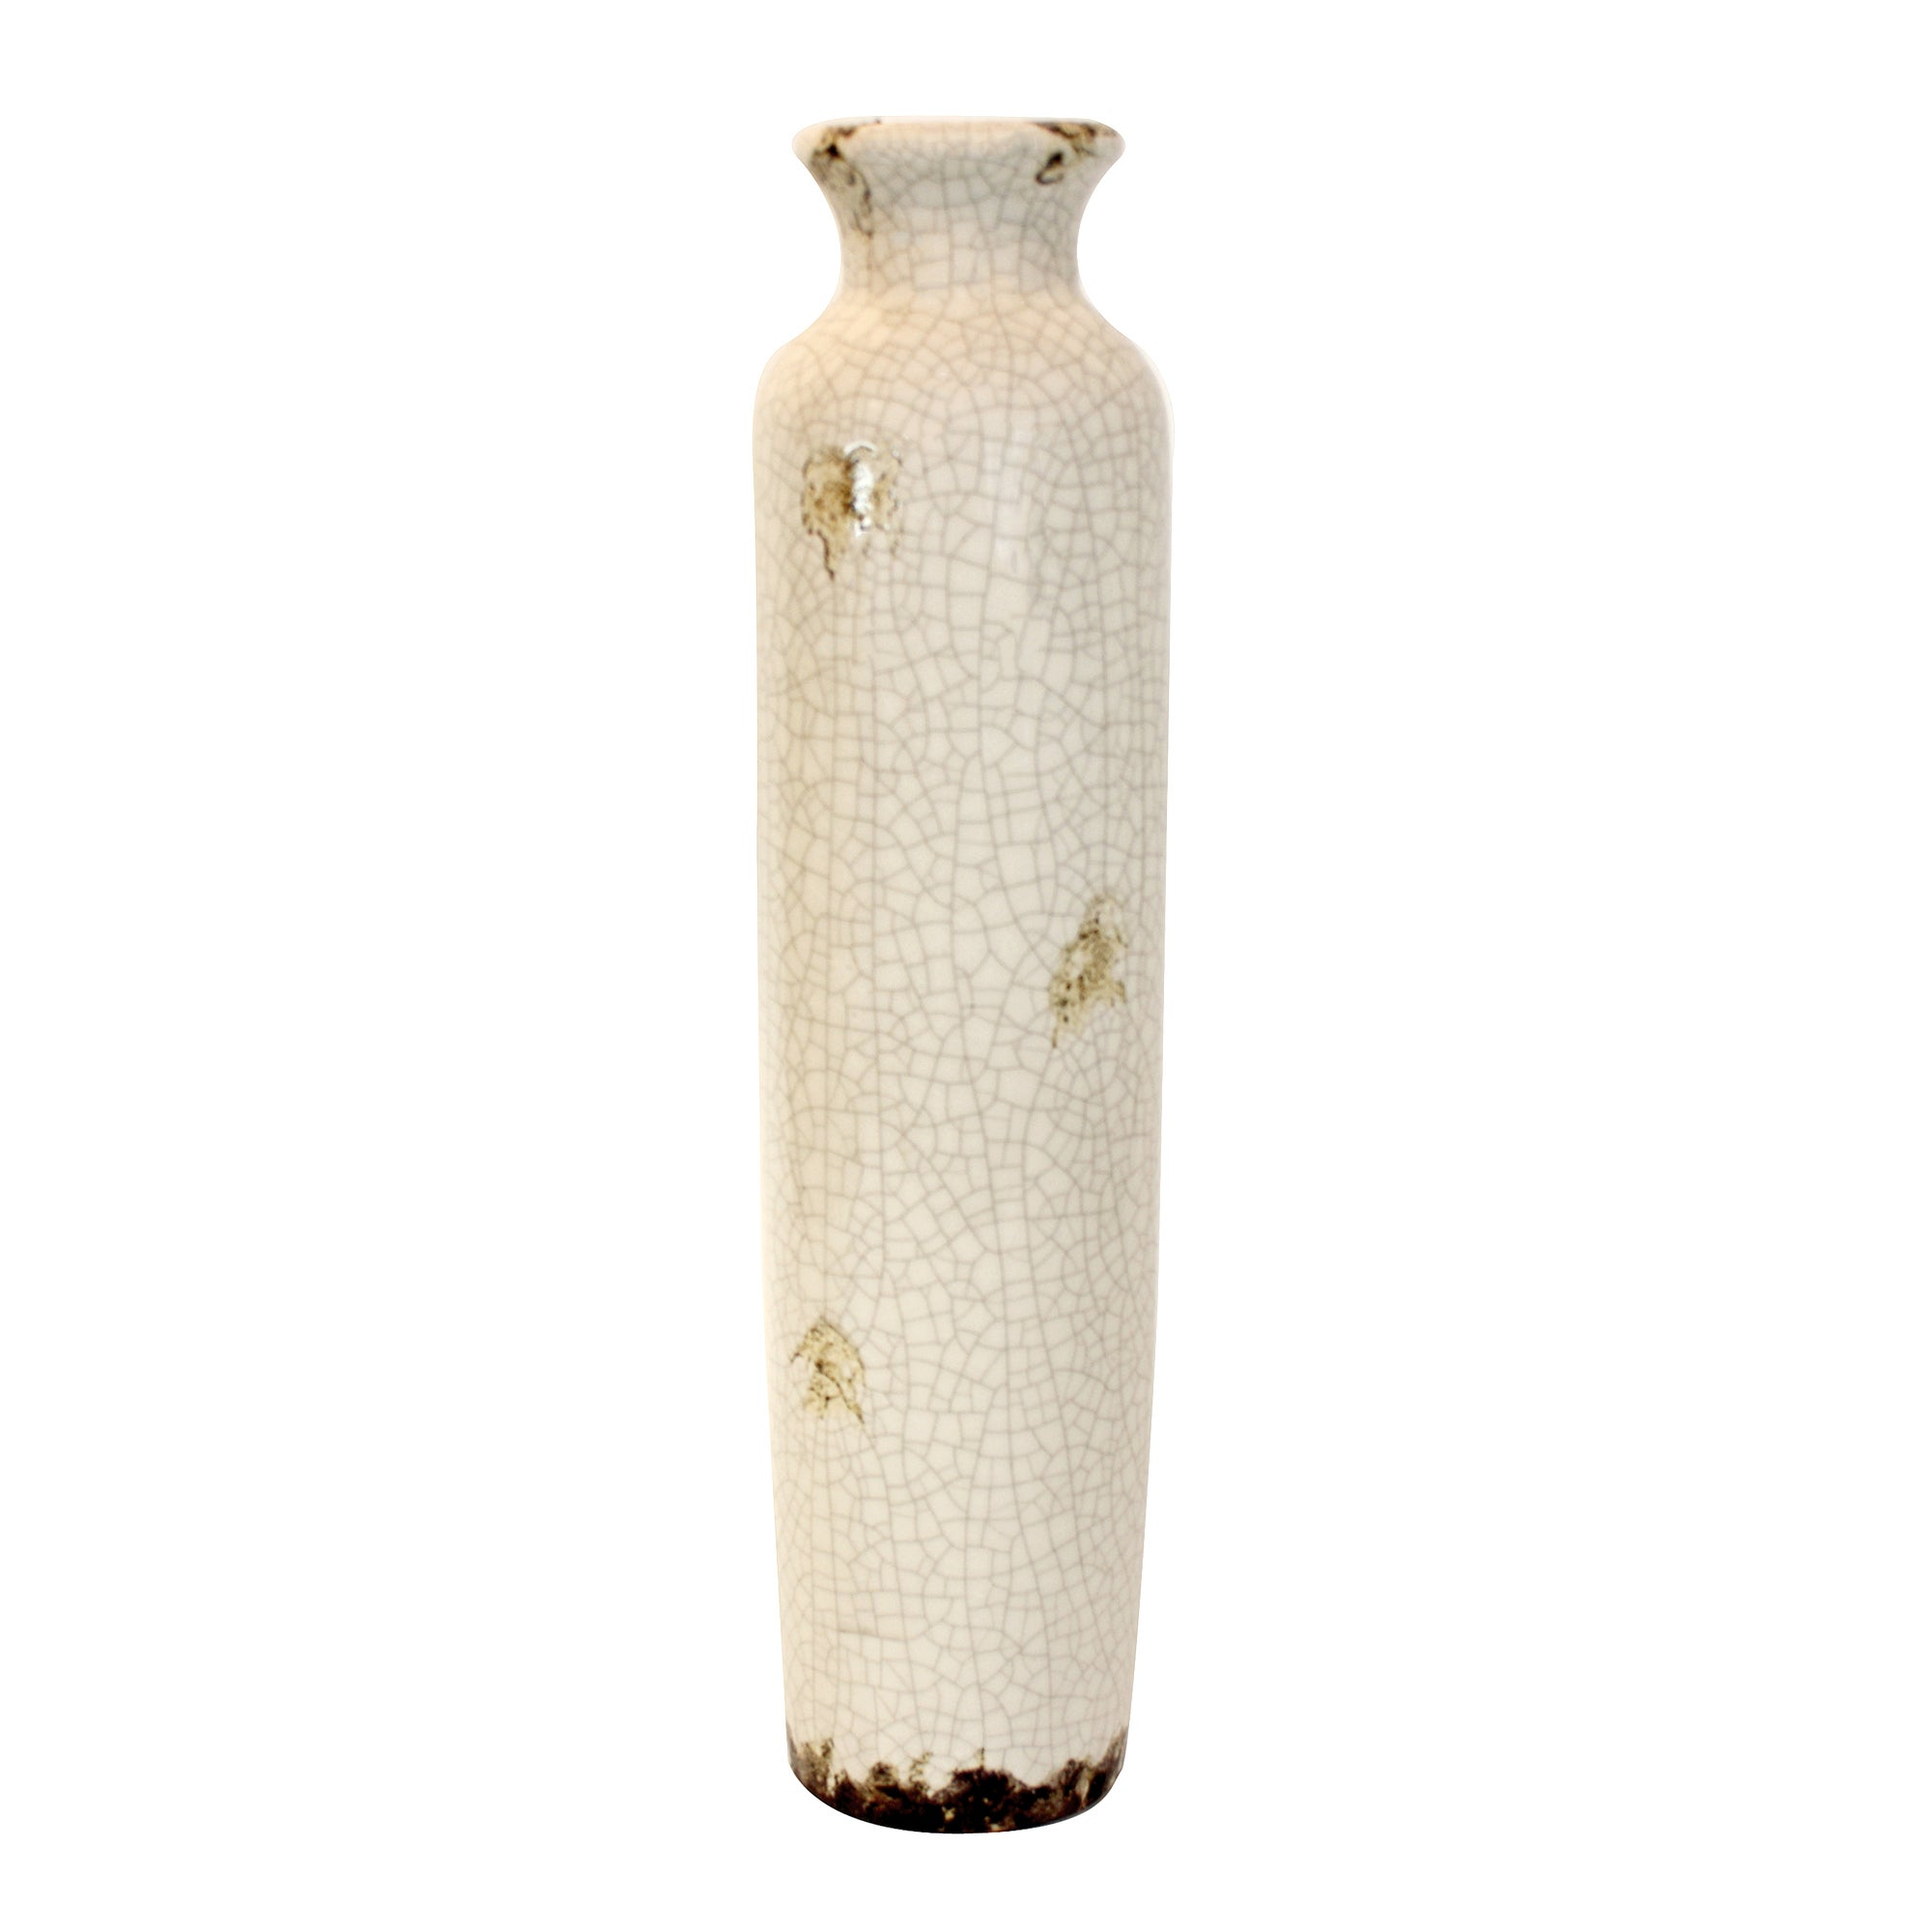 Vintage Collection Crackle Ceramic Bottle Vase